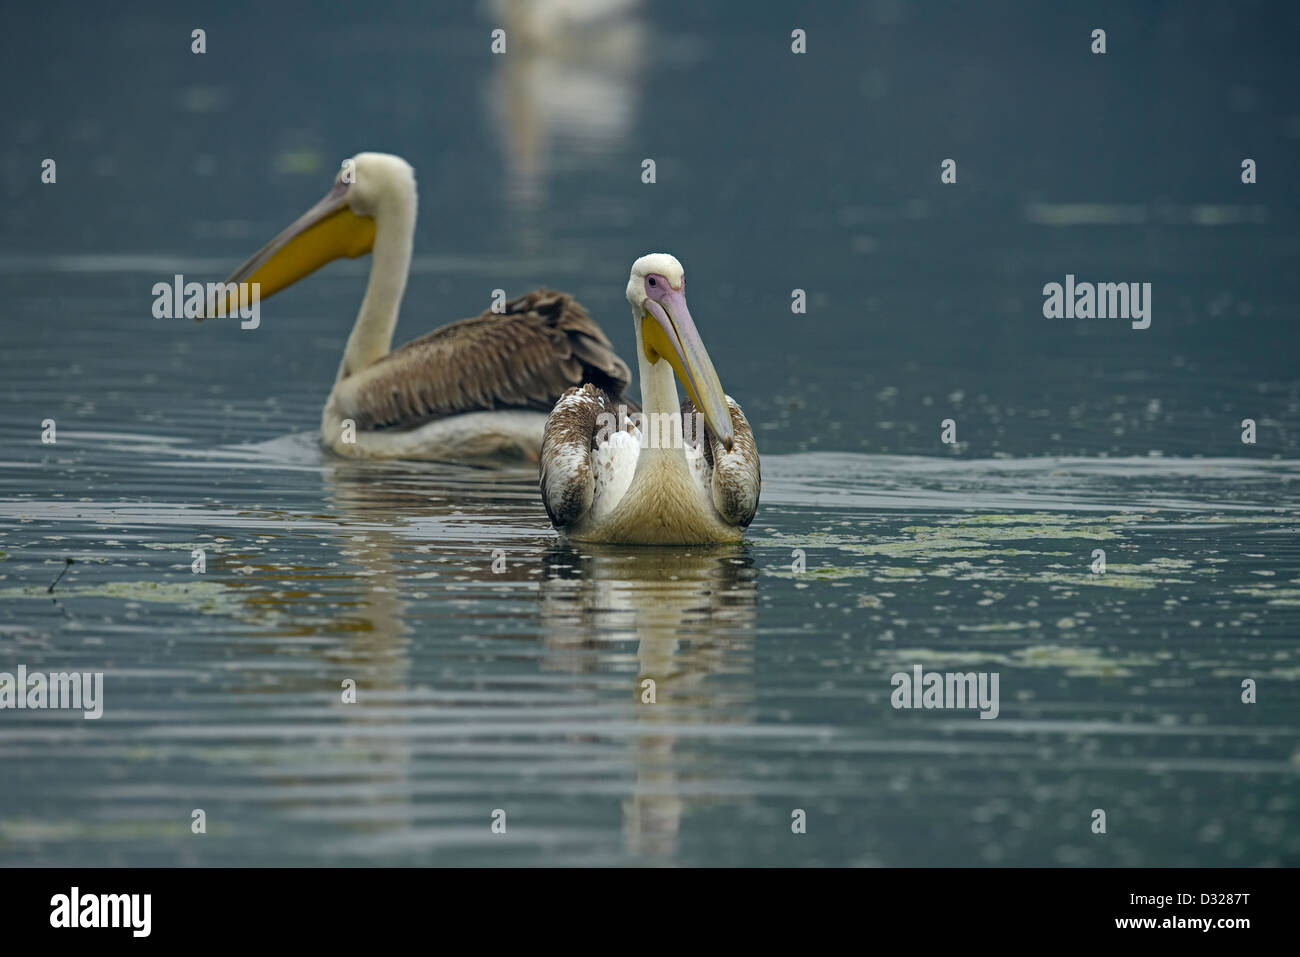 Two Great White or Rosy Pelican (Pelecanus onocrotalus) swimming in a lake in Bharatpur bird sanctuary. - Stock Image